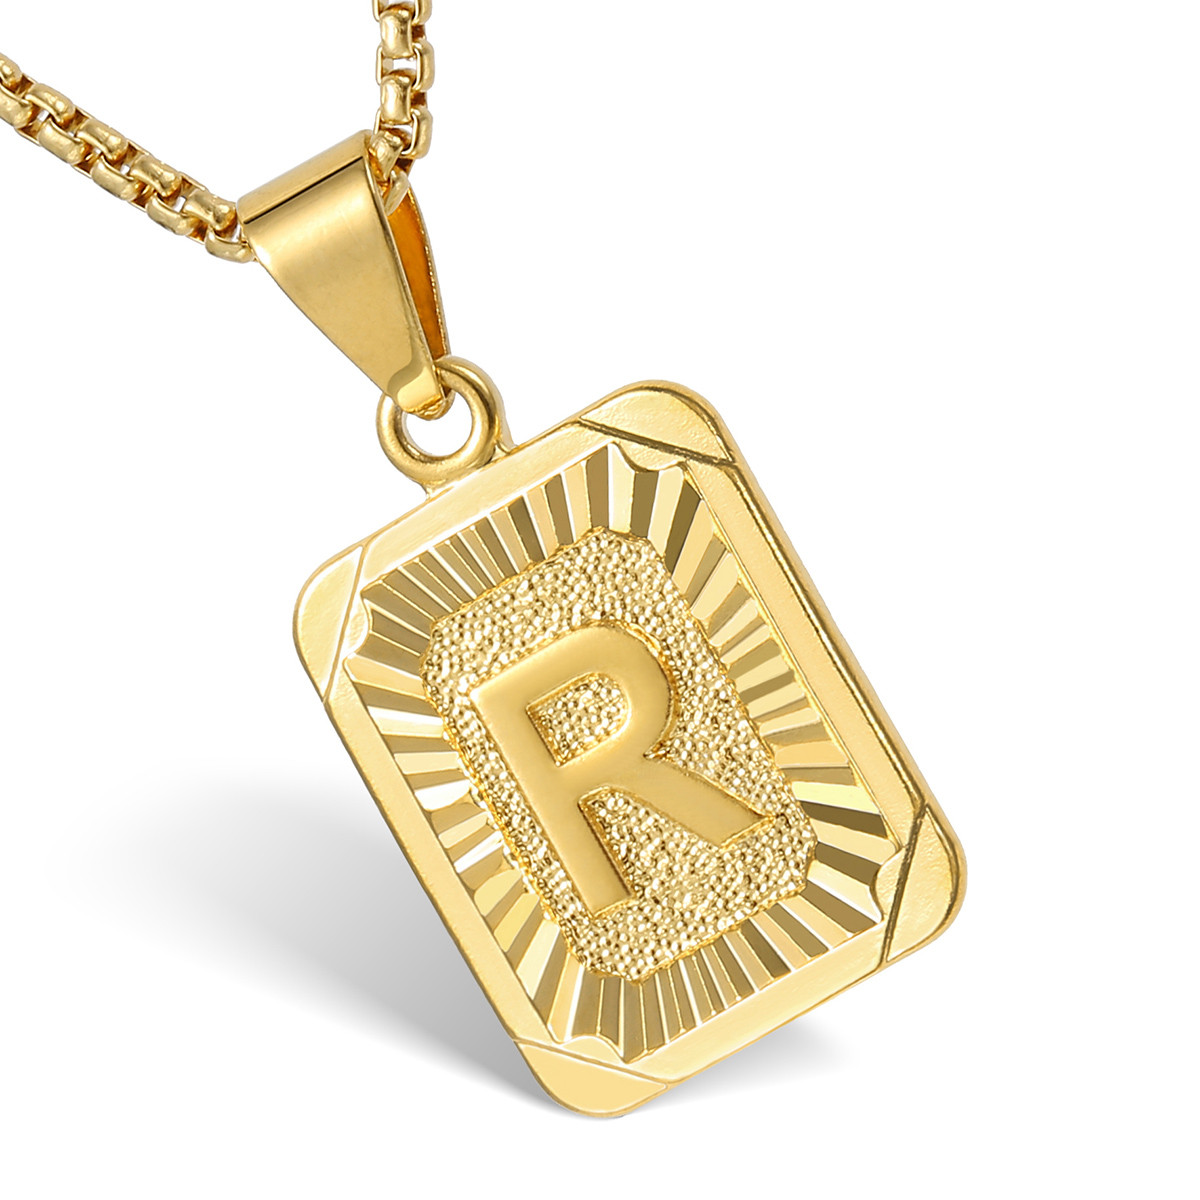 Mens women chain pendant necklace gold filled square initial letter material gold filled aloadofball Choice Image